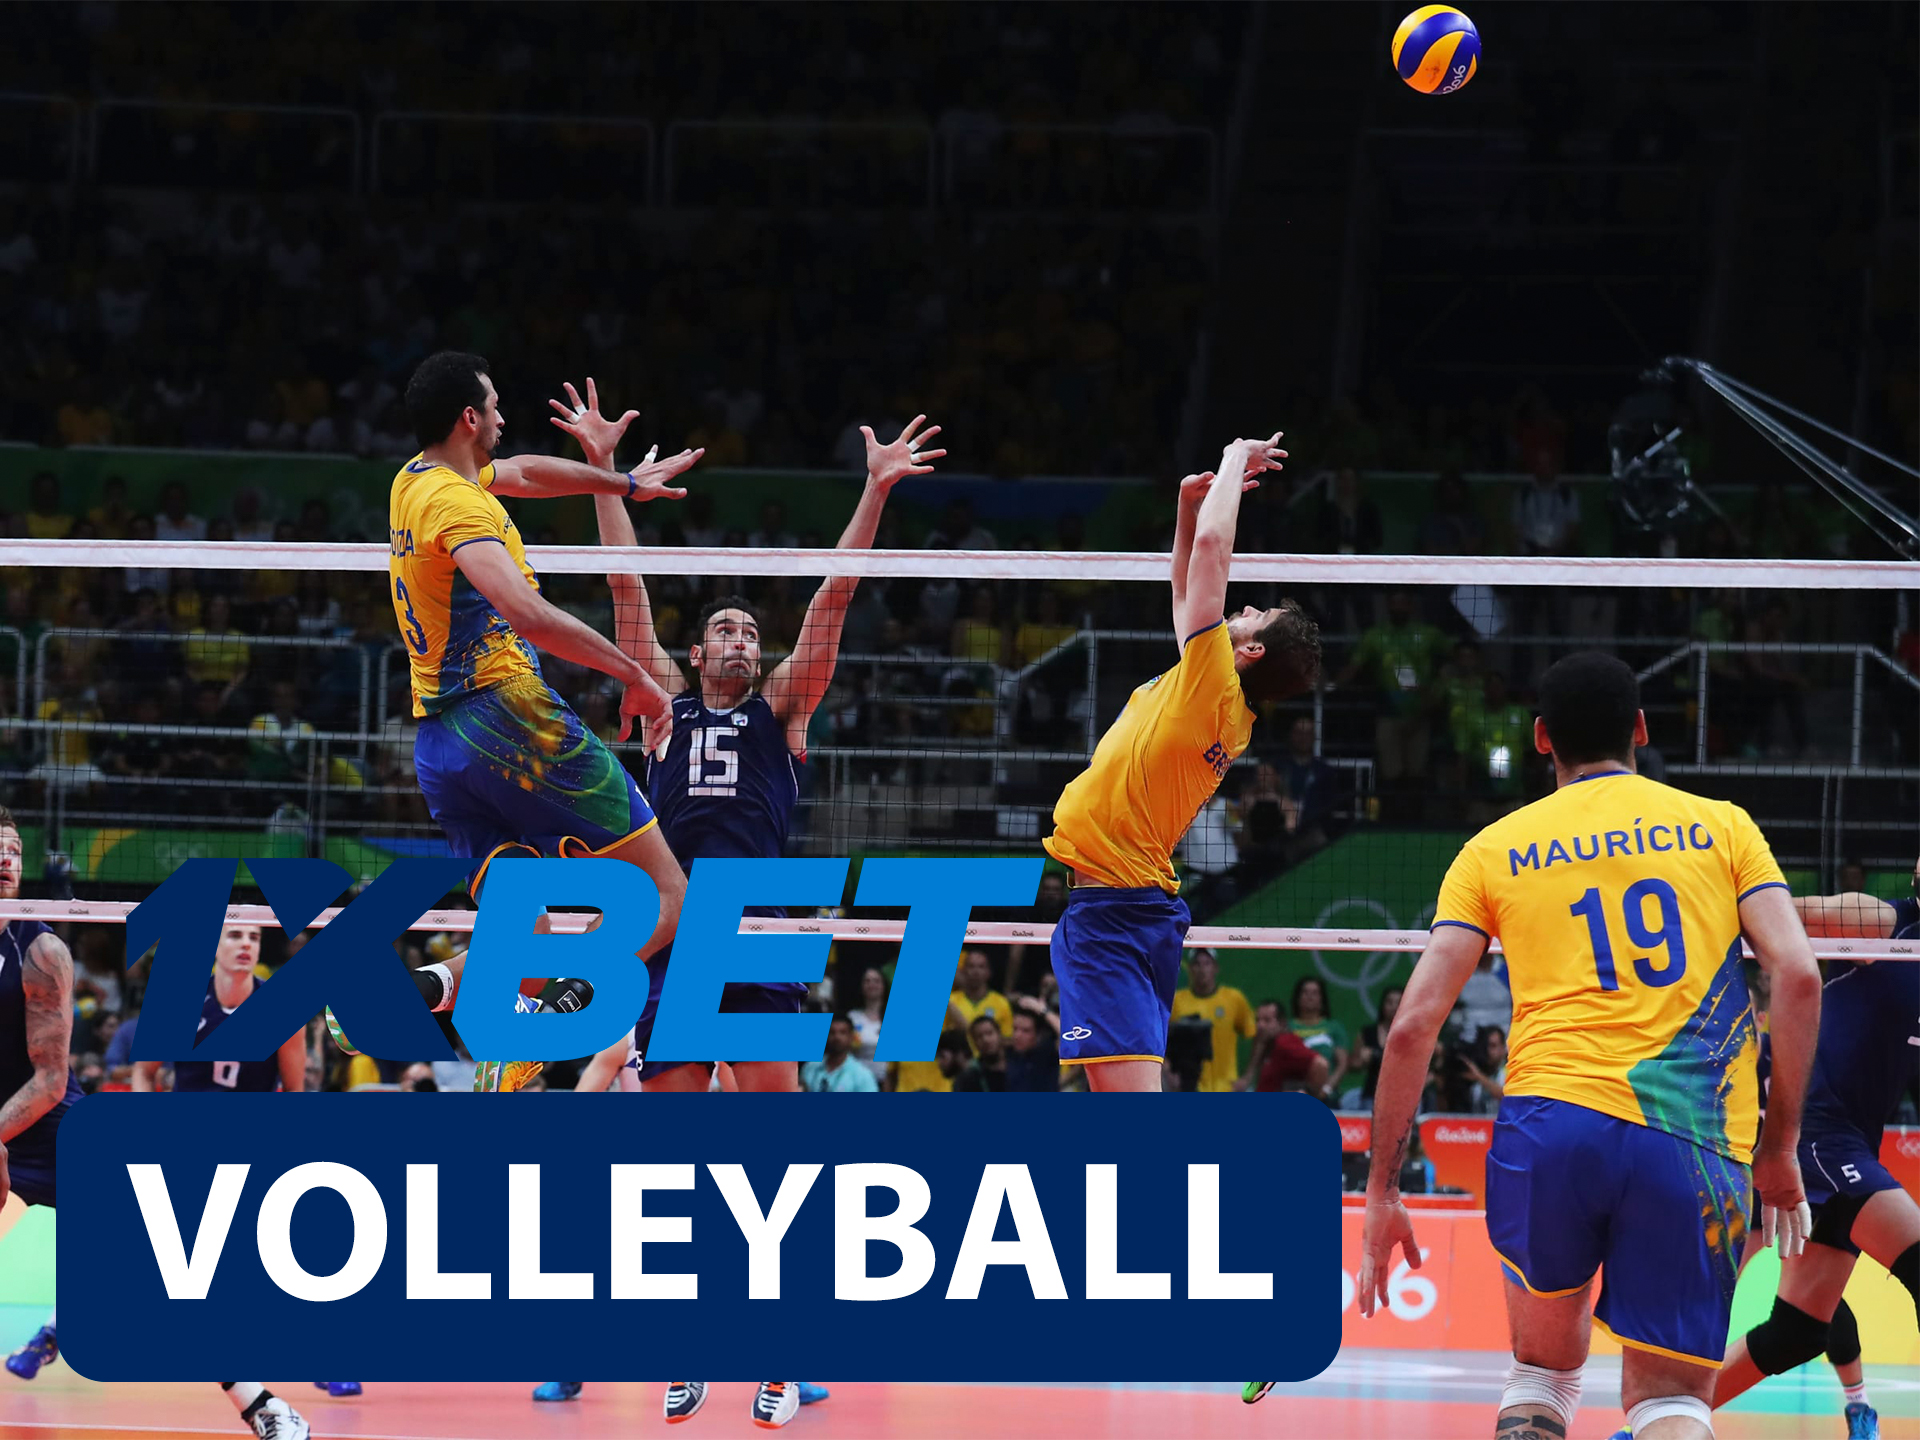 Start betting on volleyball with 1xBet.